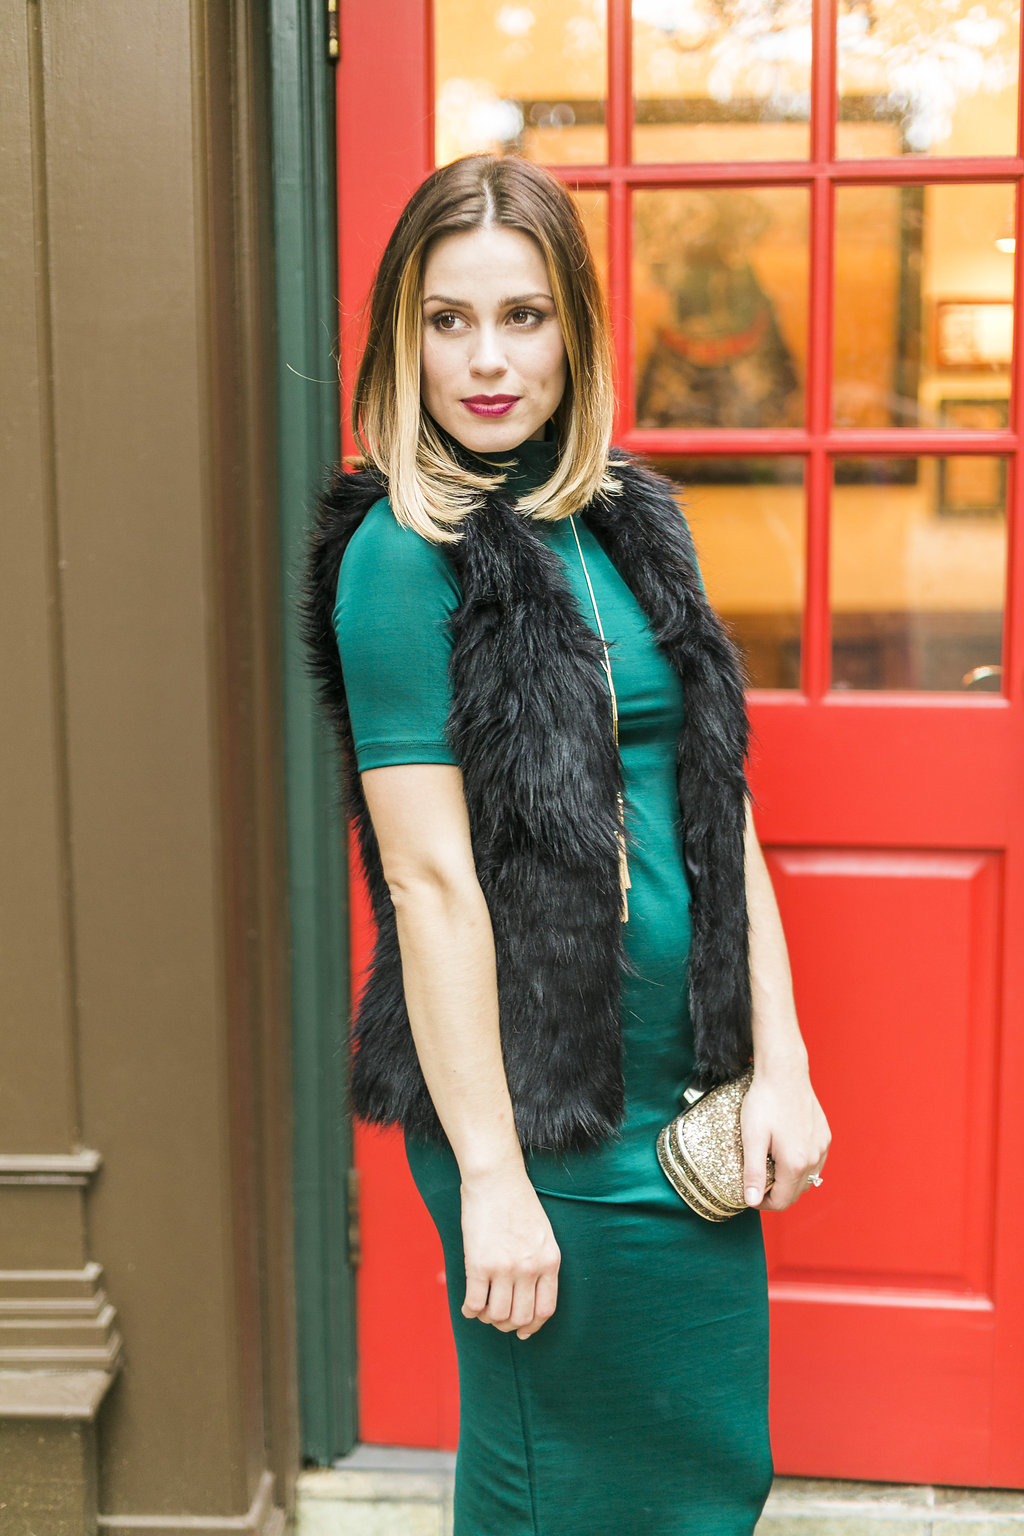 Christmas party outfit - A Merry Christmas Party Outfit by Houston fashion blogger Uptown with Elly Brown